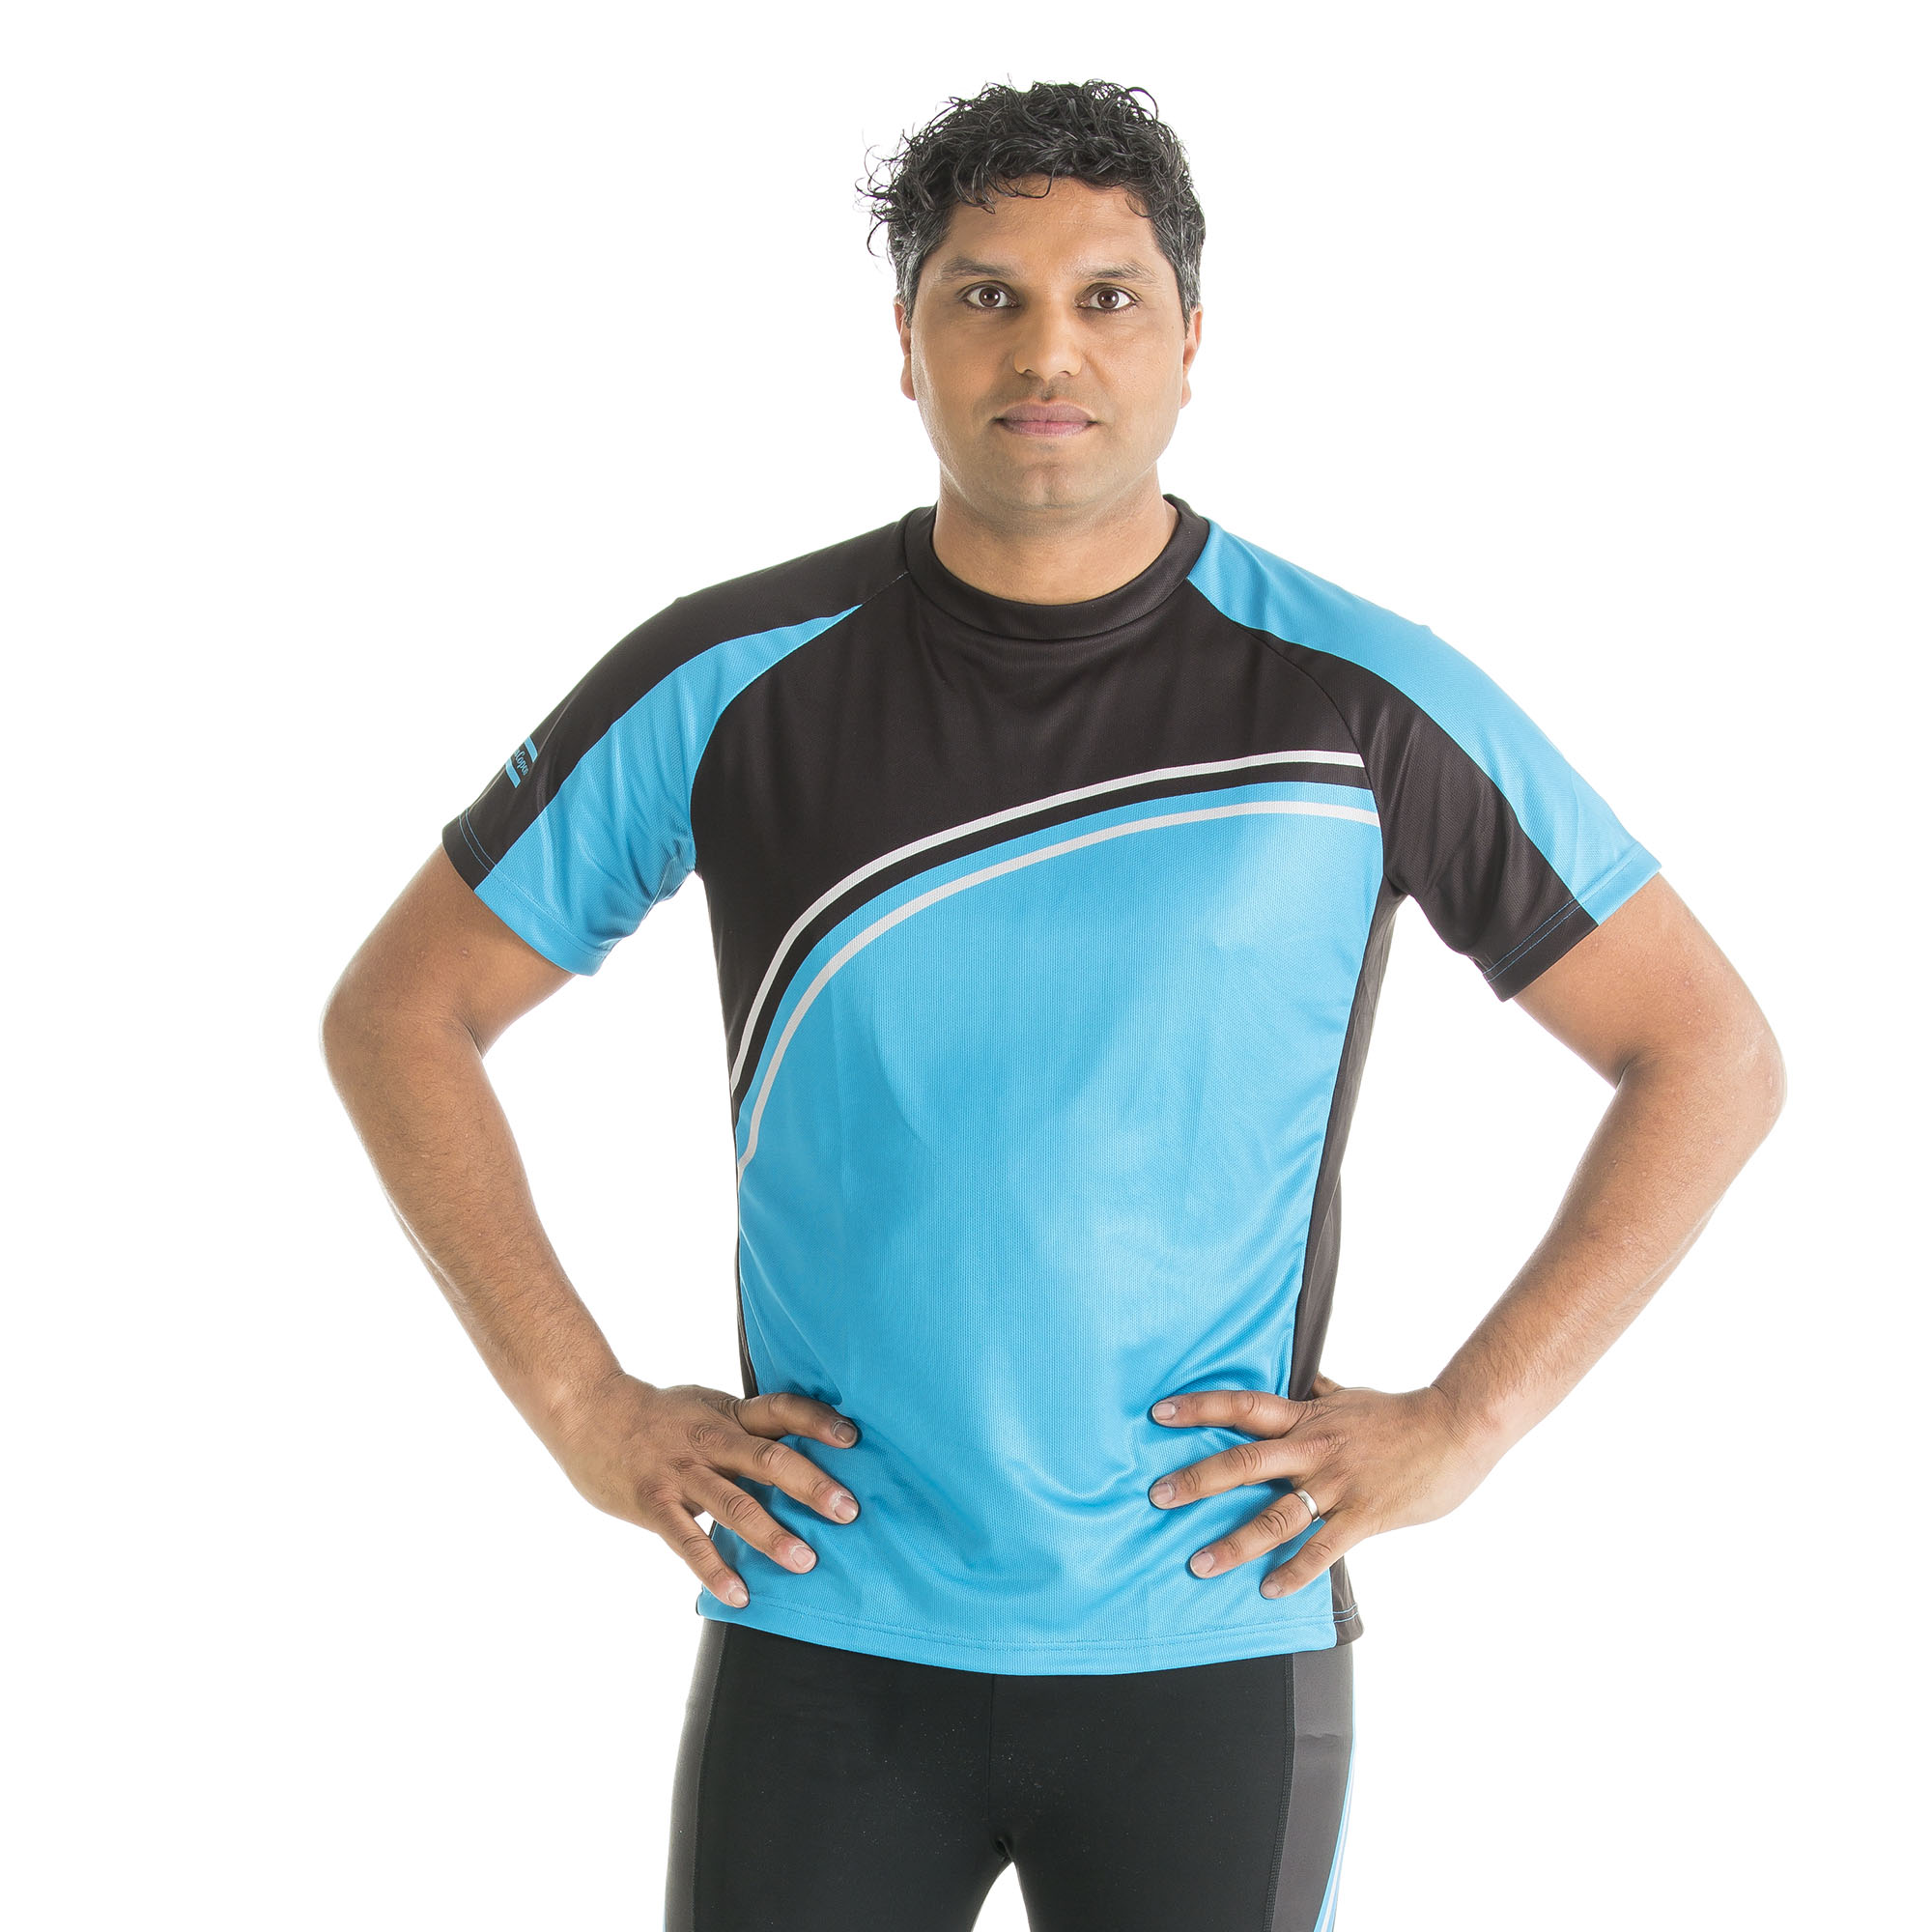 Short sleeved running shirt with raglan sleeves for optimal comfort. Soft micro fiber textile leads moisture away from the body while ensuring maximum freedom of movement. Exercise a lot. Enjoy it.